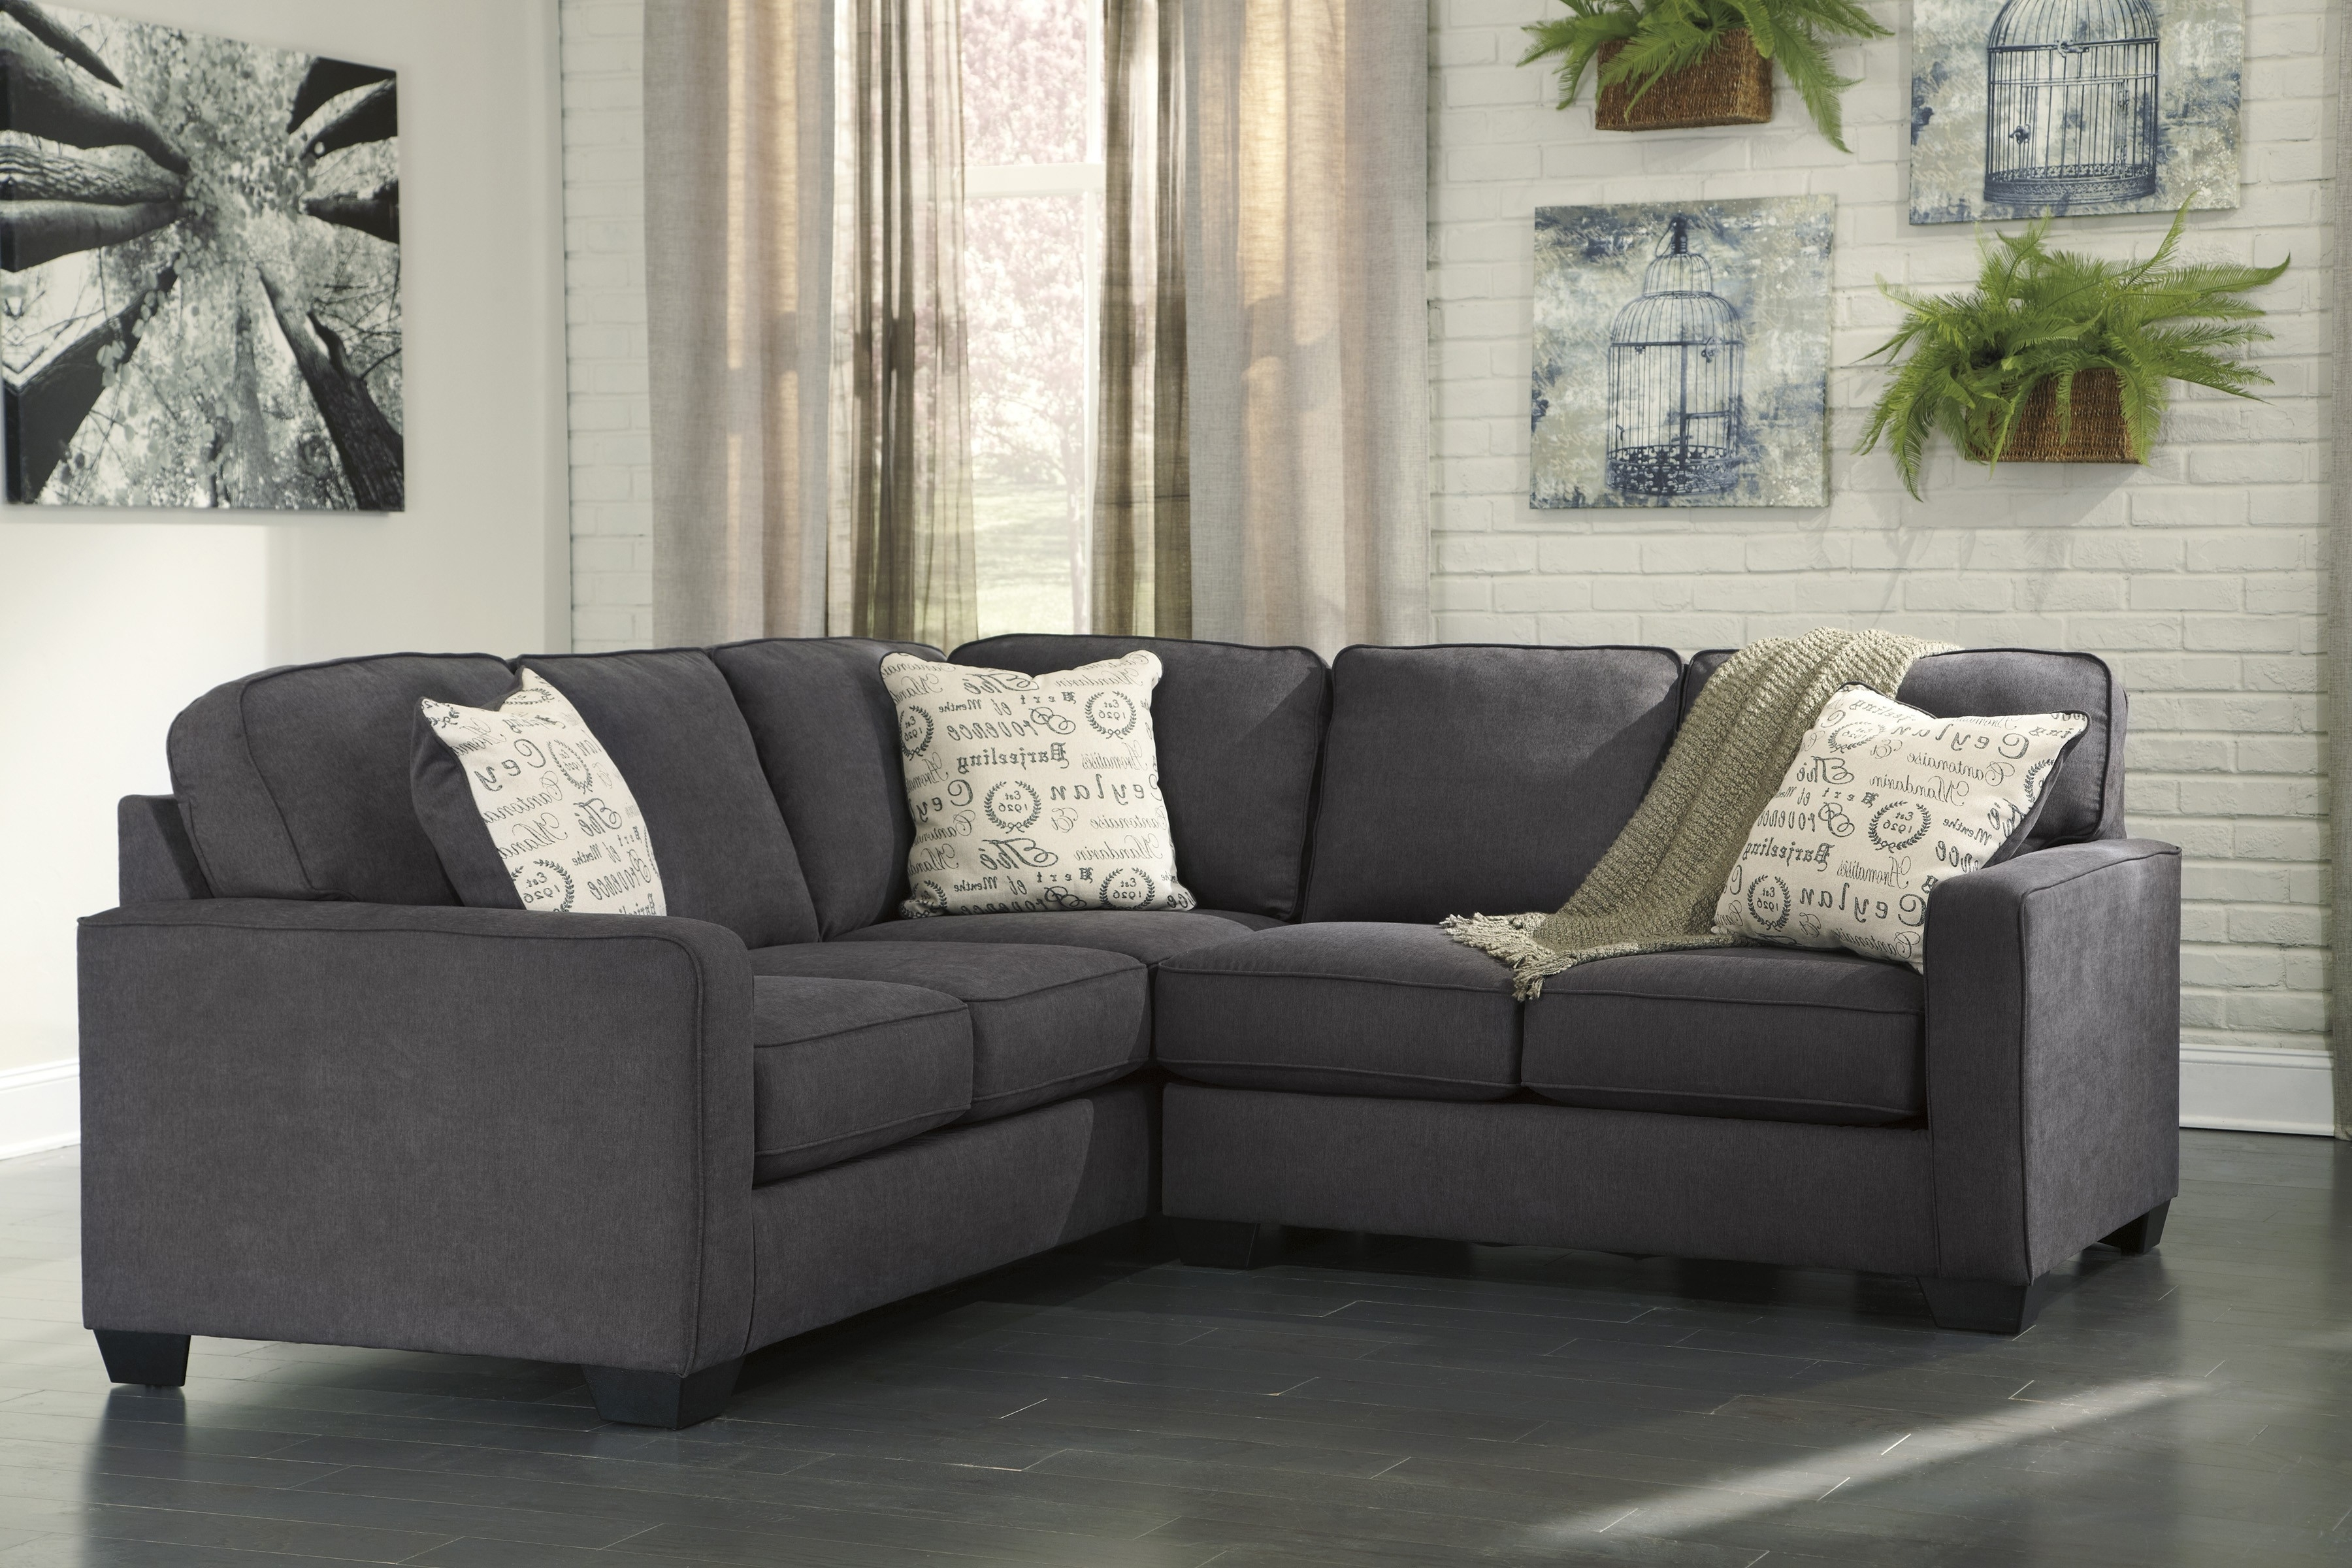 Multi Piece Sectional Sofa – Sofa Designs With Regard To Malbry Point 3 Piece Sectionals With Laf Chaise (Image 22 of 25)